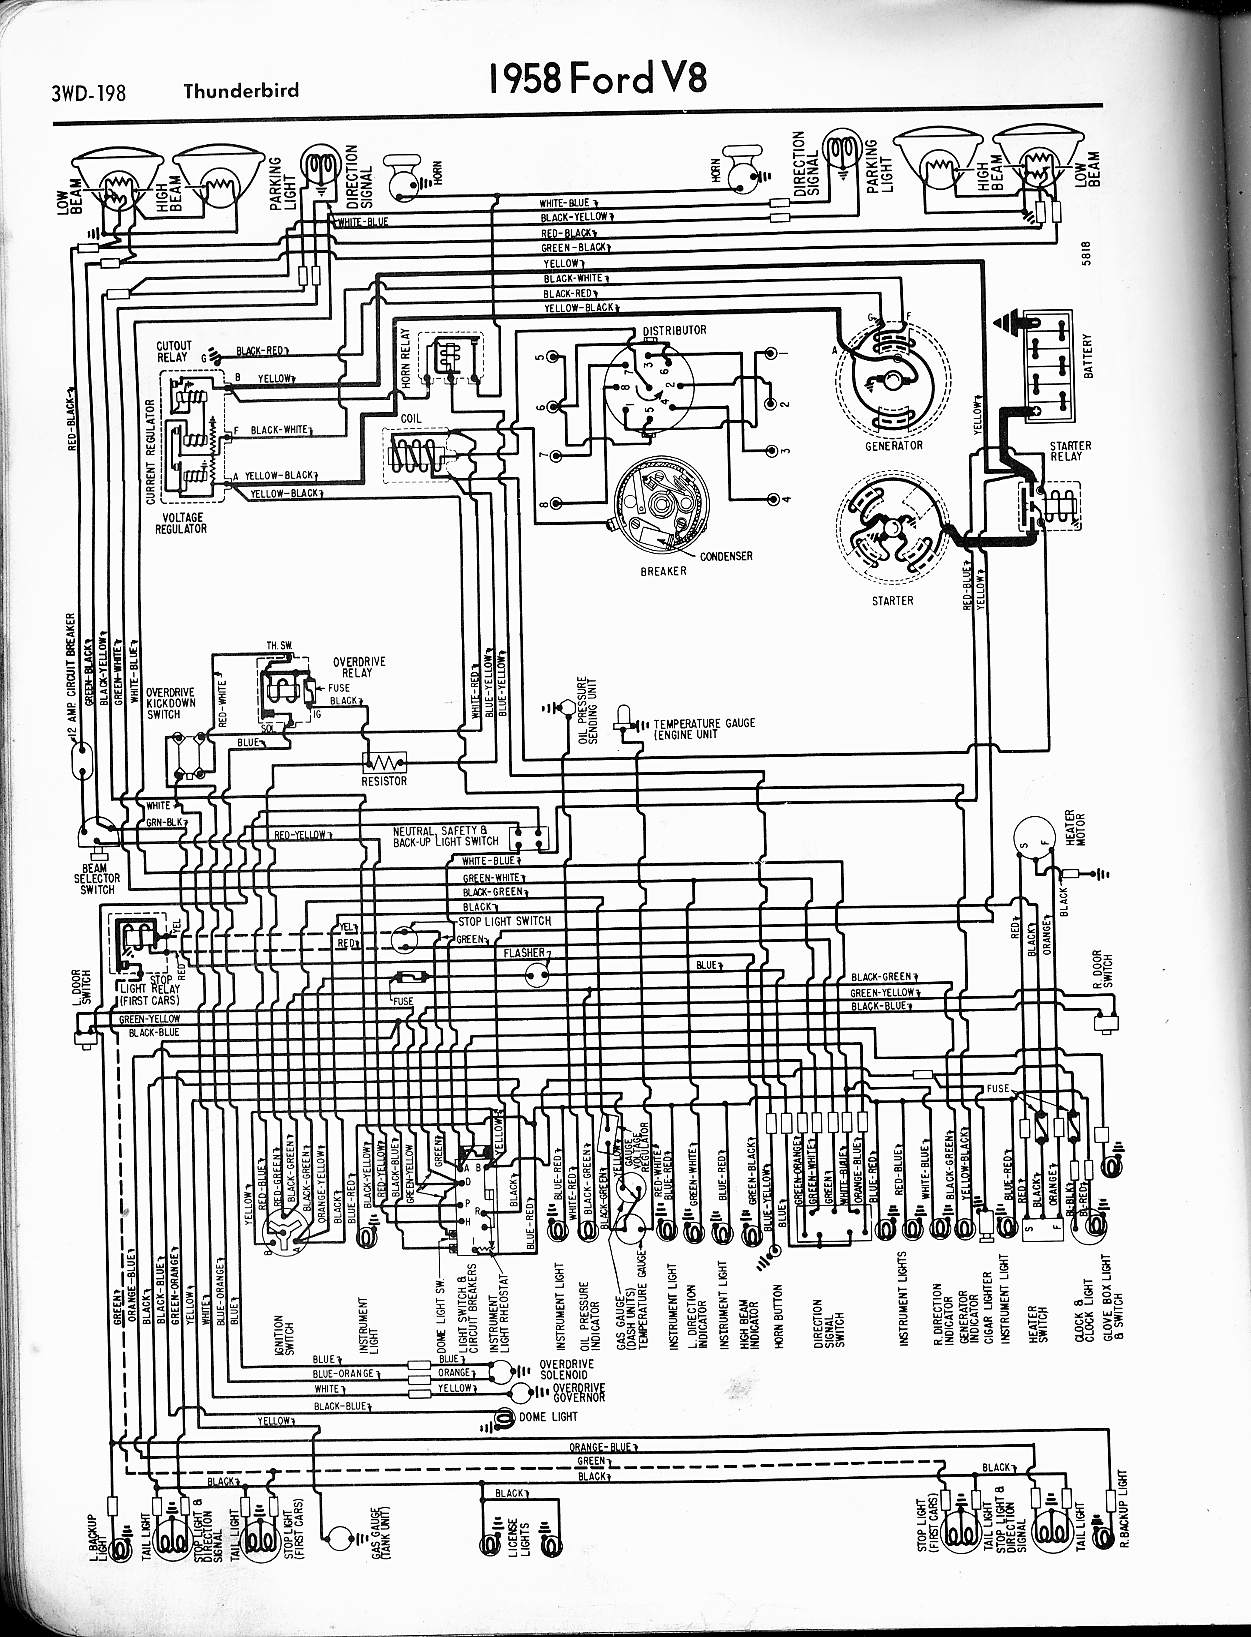 1965 ford starter wiring wiring library Ford Starter Solenoid wire diagram for 1965 t bird schematics wiring diagrams u2022 rh parntesis co remote starter wiring